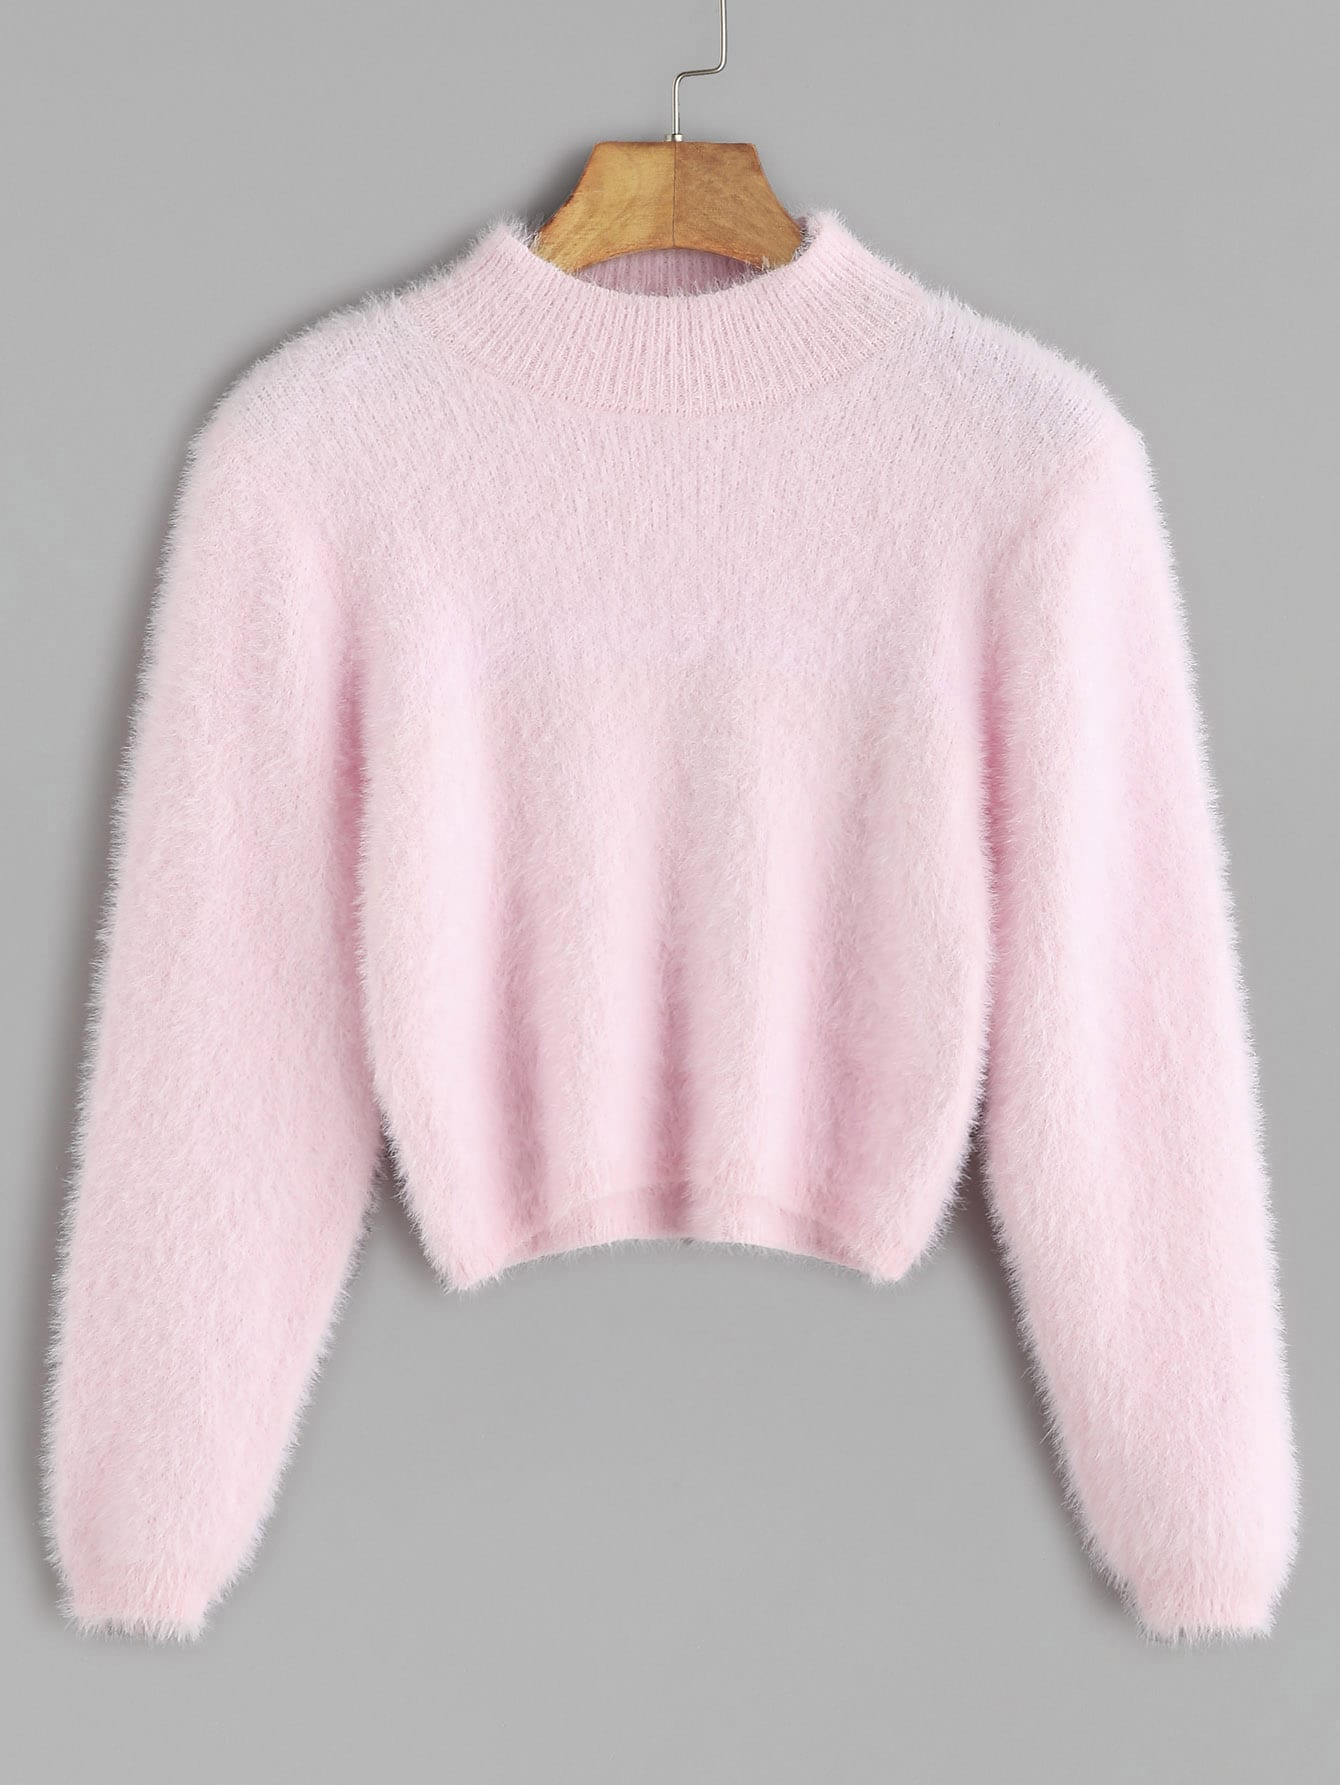 Pink Crew Neck Crop Fuzzy Sweater -SheIn(Sheinside)